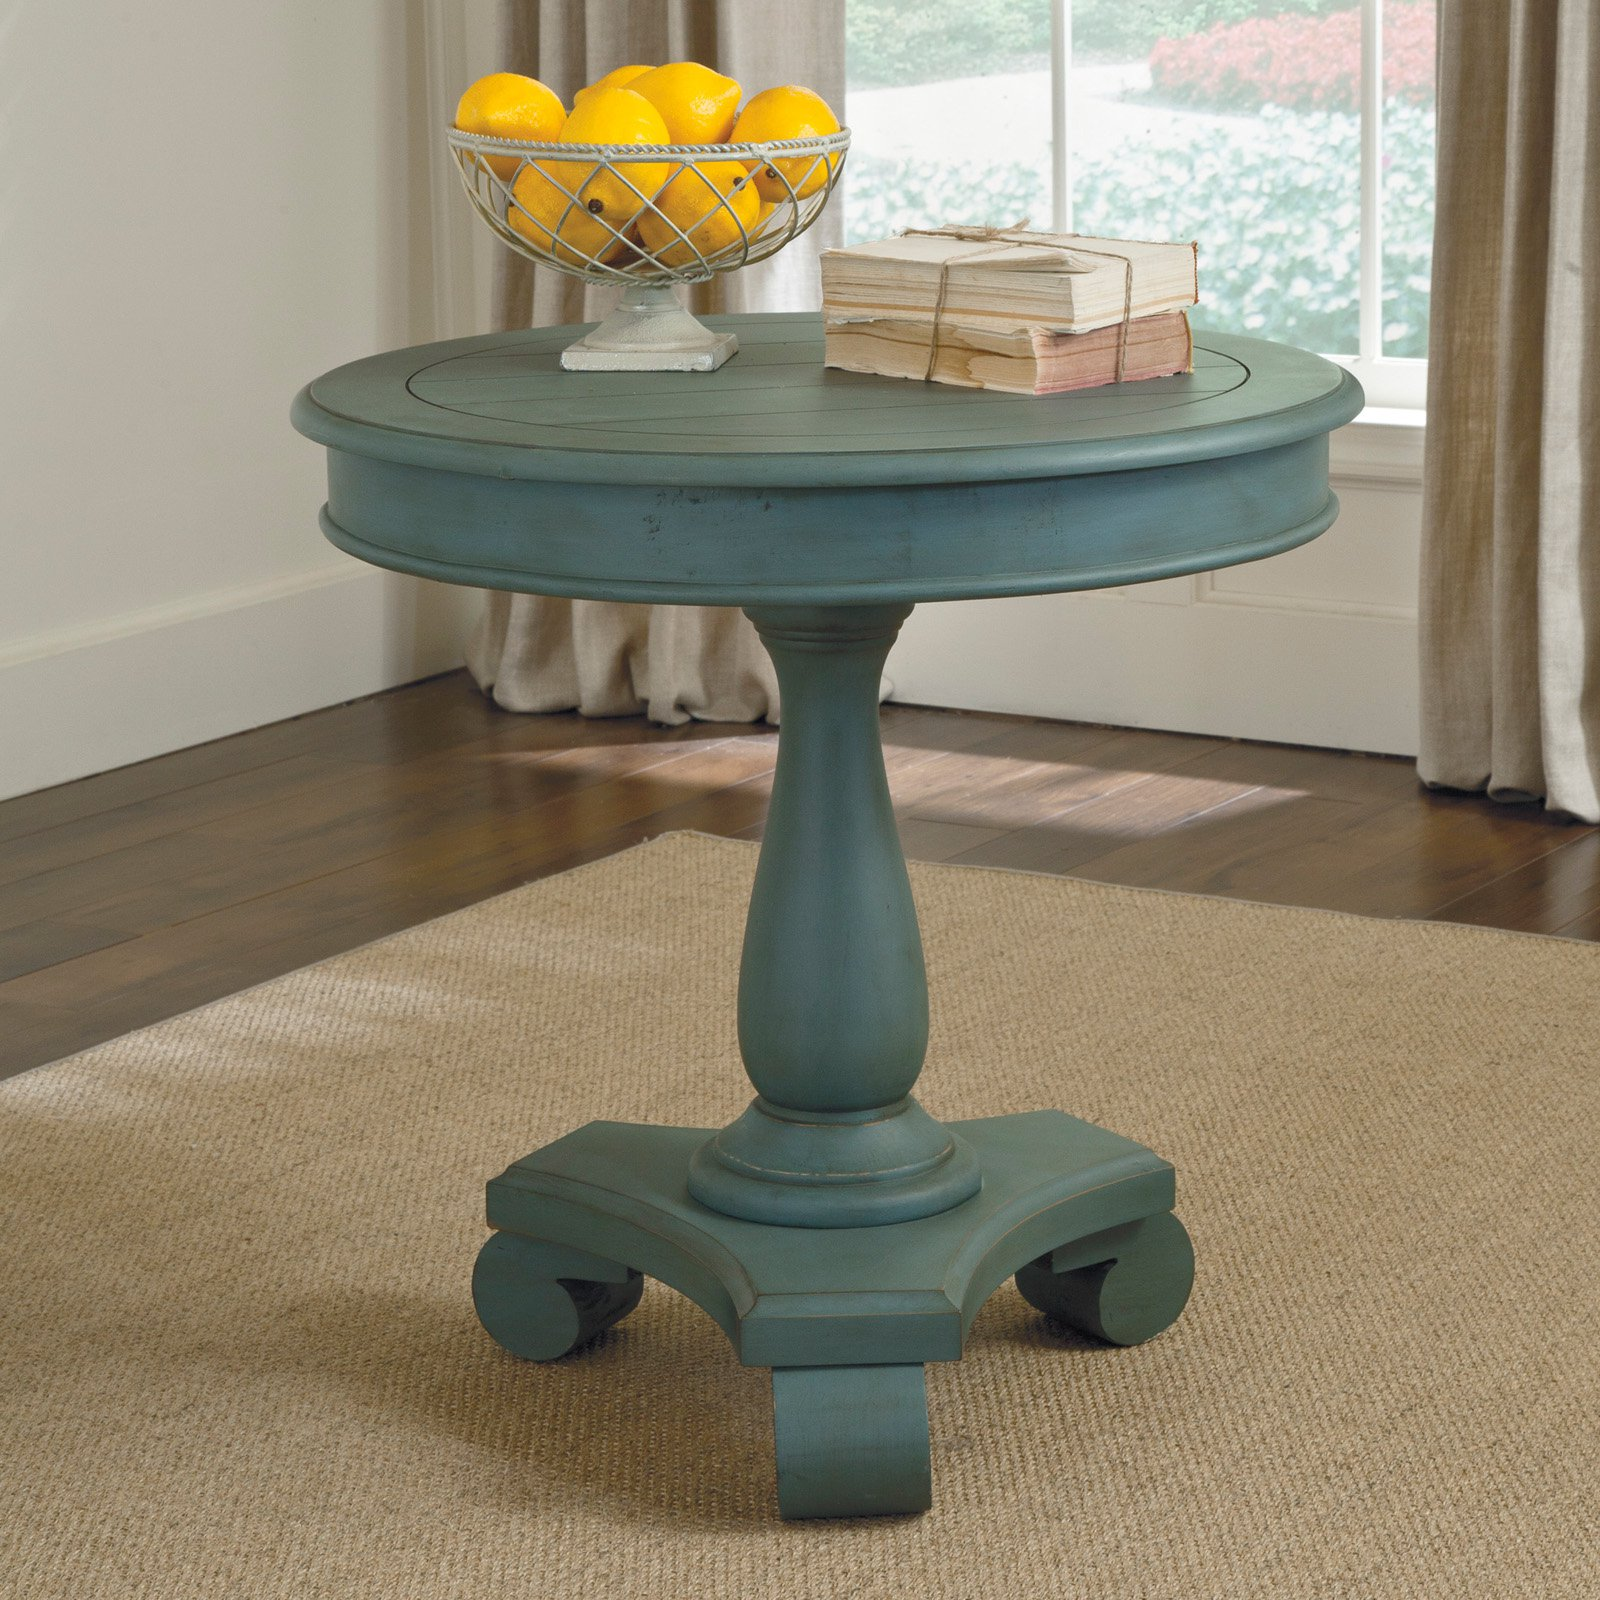 signature design ashley cottage accents blue round accent table rustic coffee with storage narrow patio entryway light mango wood furniture end tables retro bedroom chair half